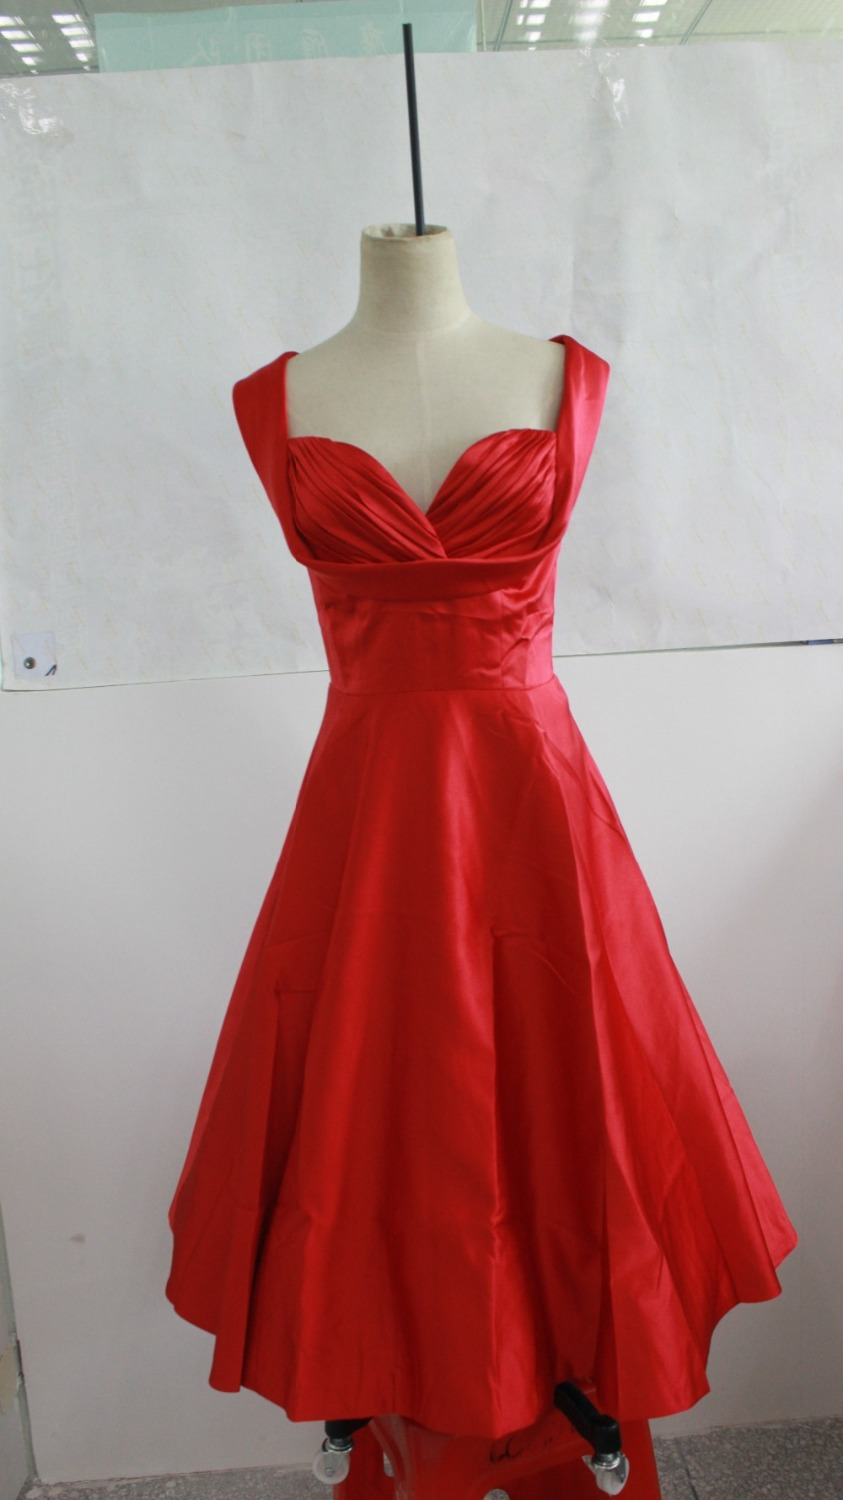 Retro Dresses for Sale | Dress images